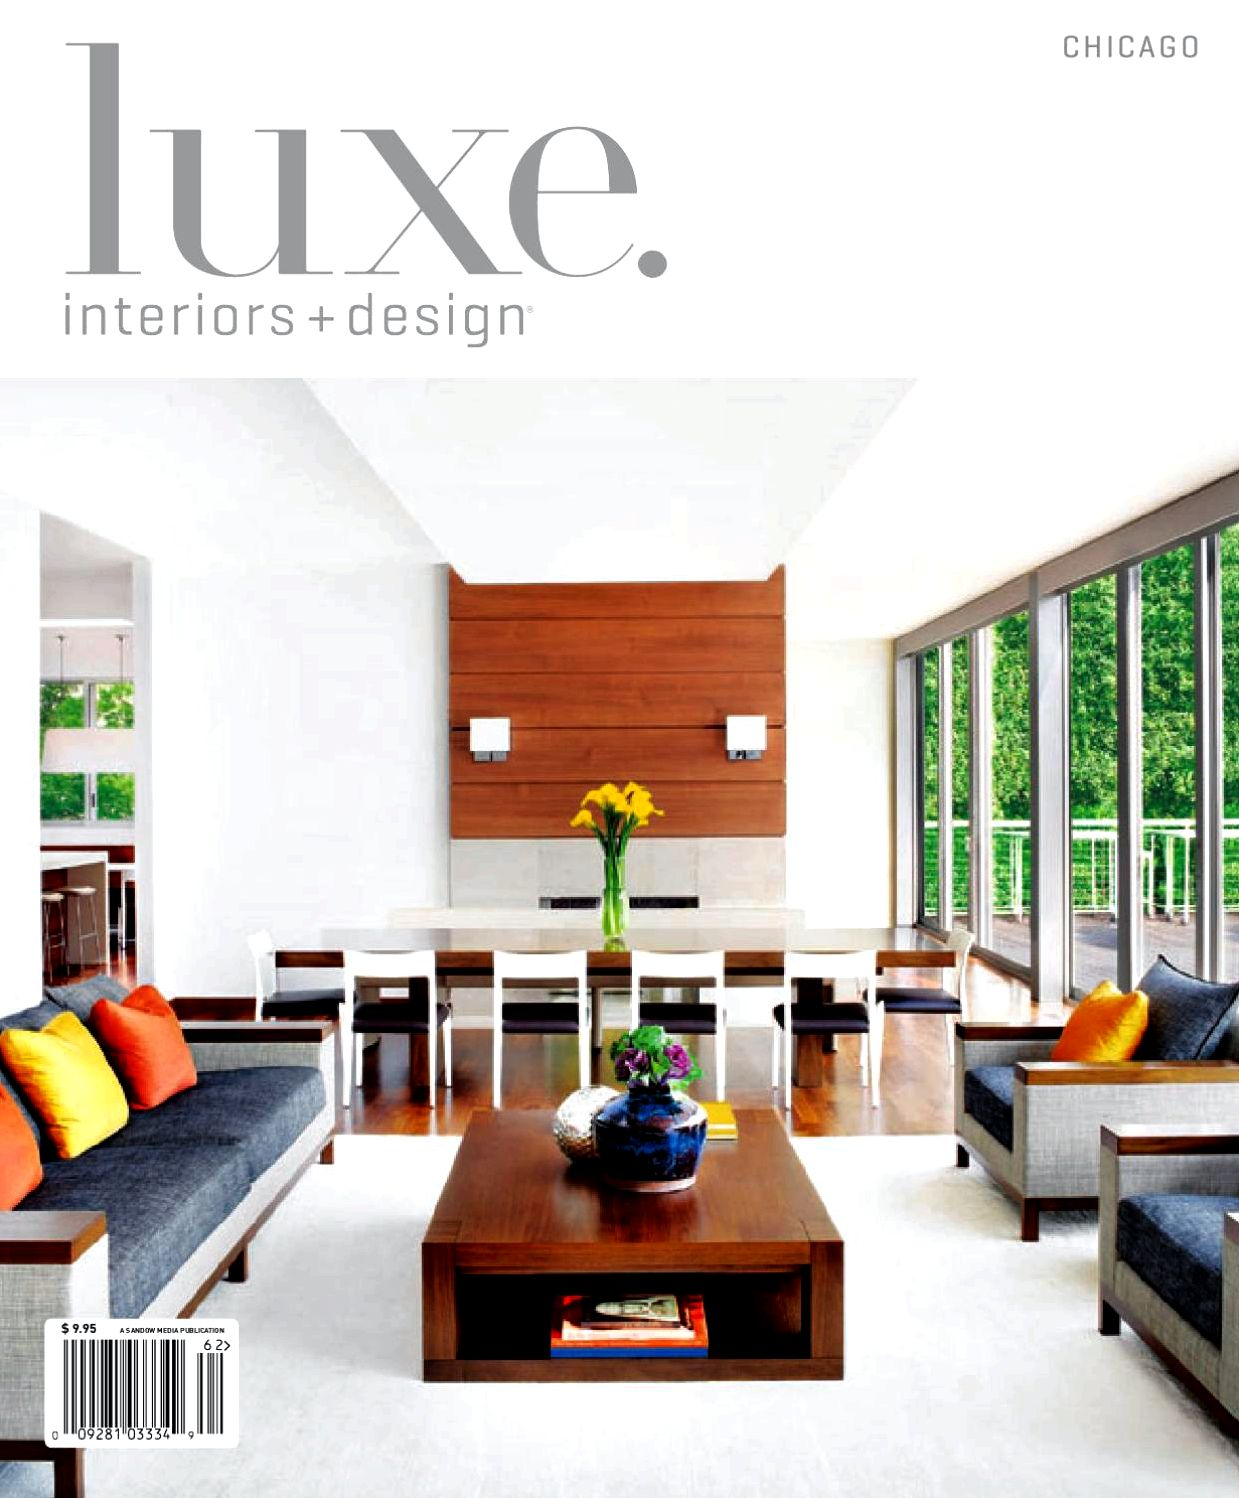 Cambria partners with luxe interiors + design and jiun ho corporation. on innovative quarta movement furnishings and decor - sandow Leifer, Lisa